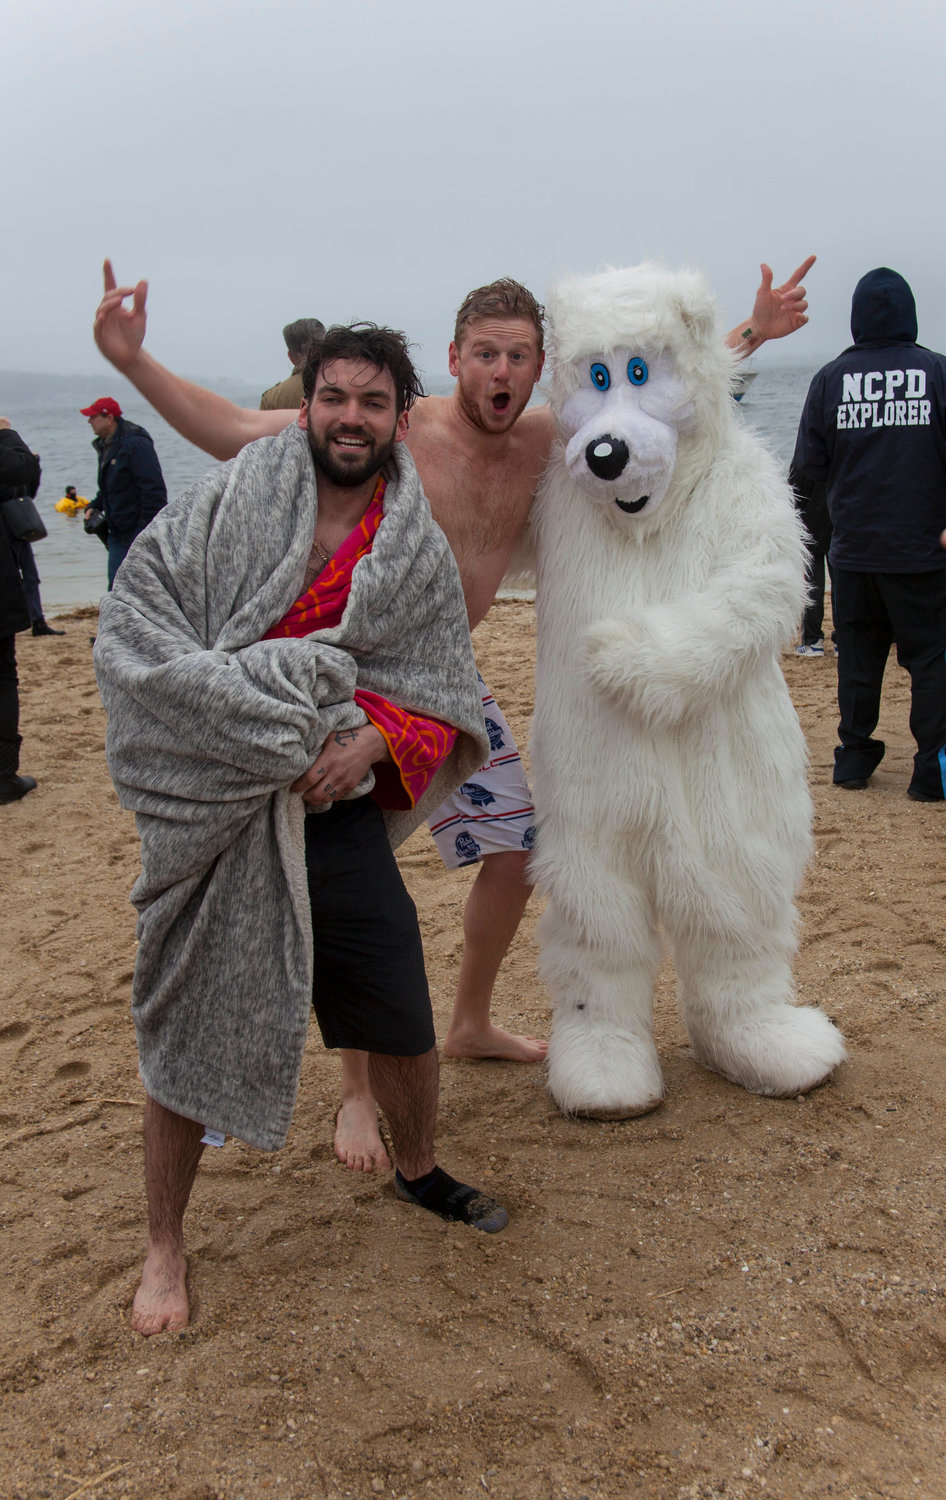 Travers Kalbero, left, and Alex Kushnir hung out with a mascot who appeared neither wet nor cold.